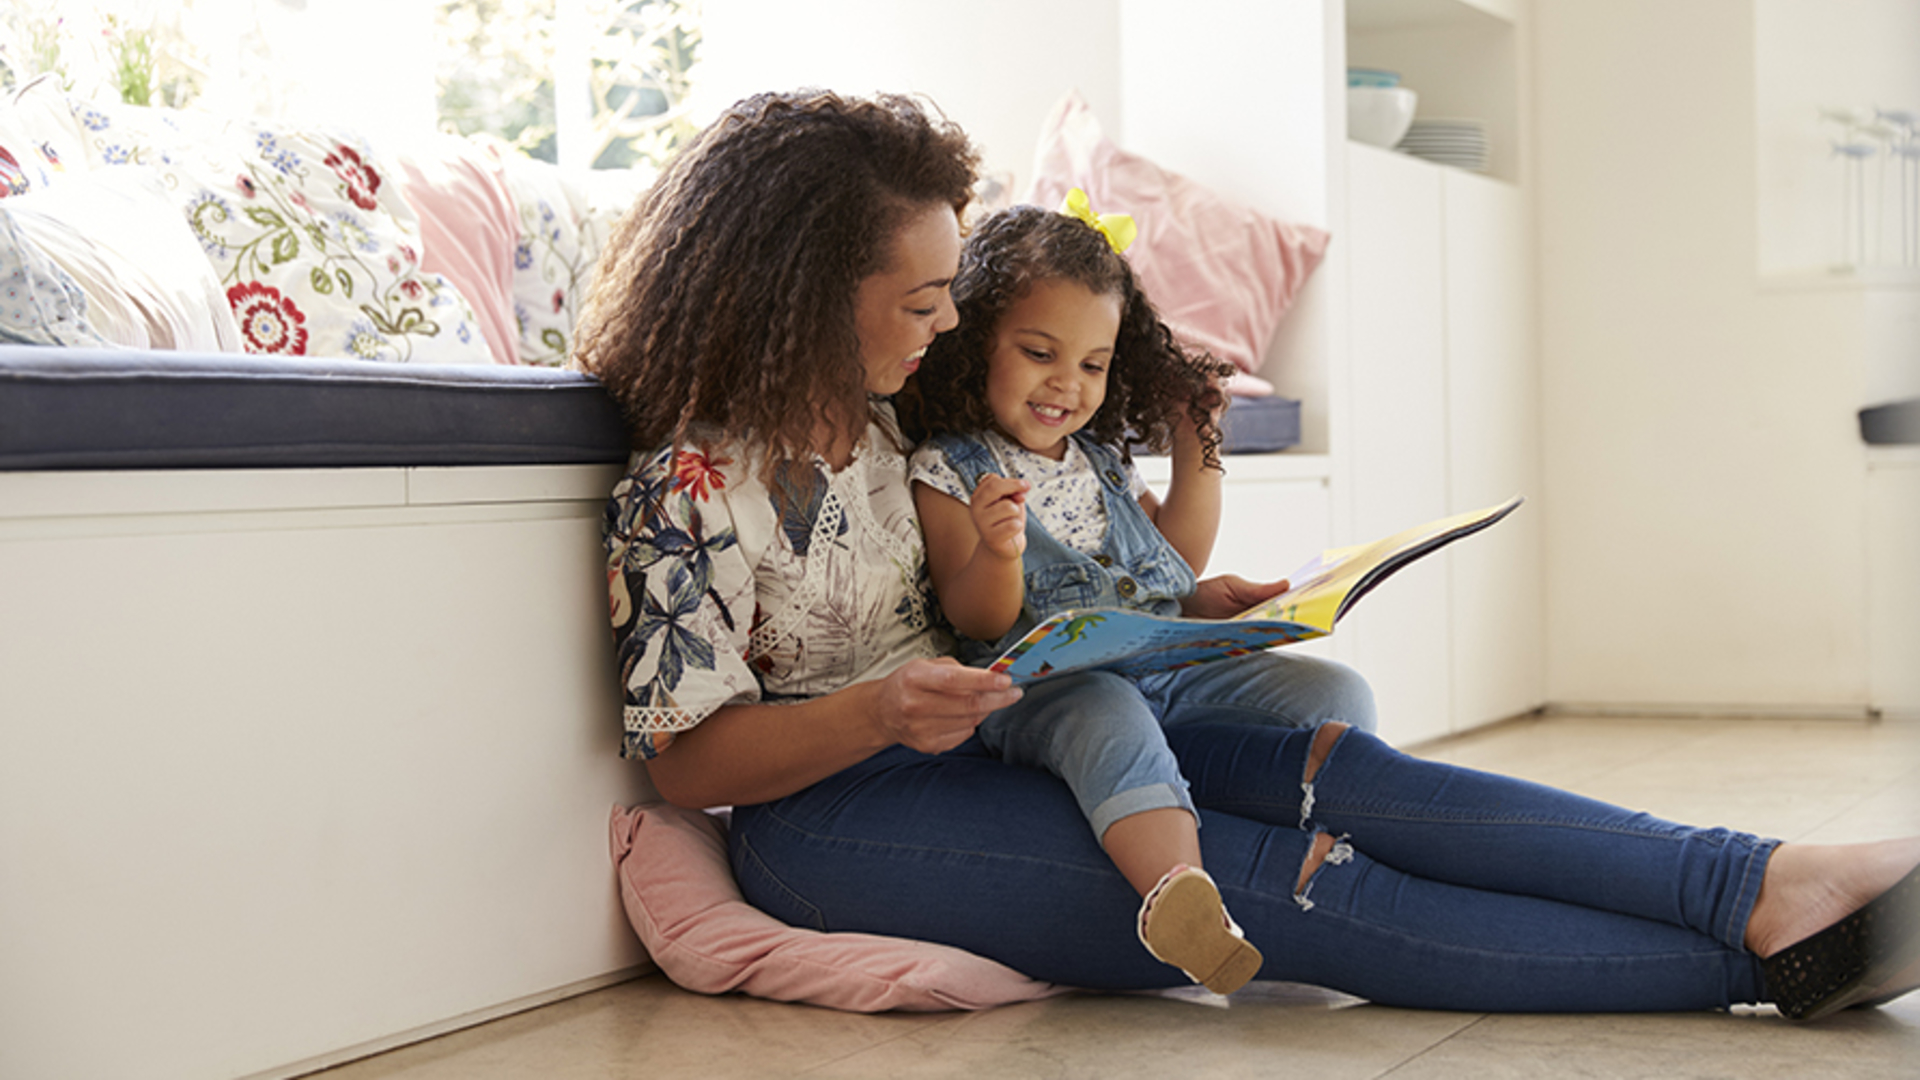 How to make reading time fun again